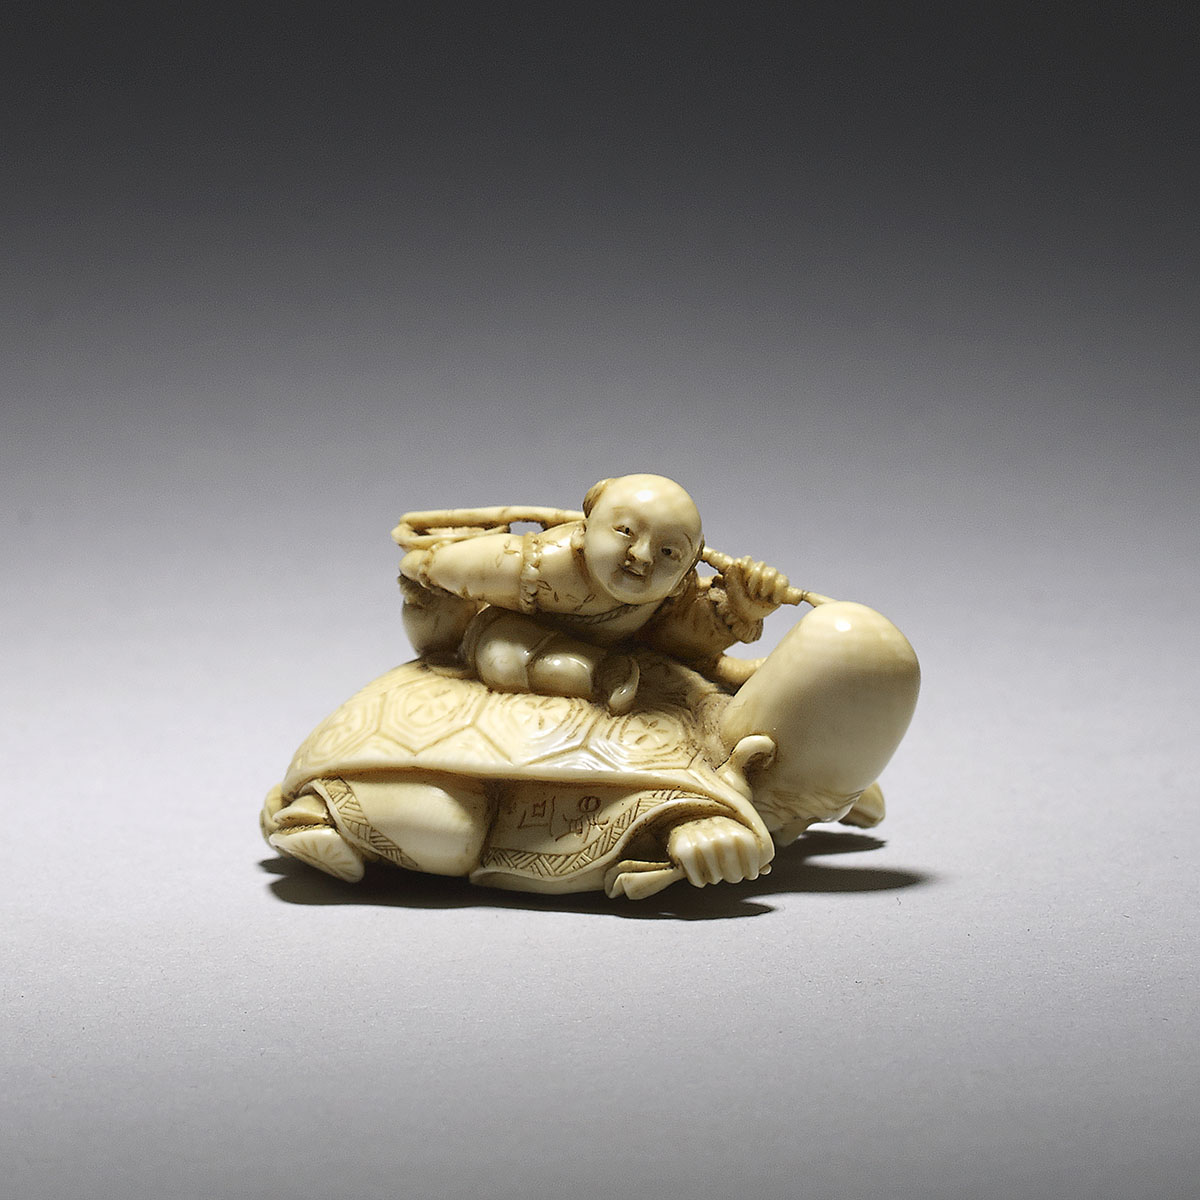 Ivory netsuke, a mitate on the story of Urashima Taro